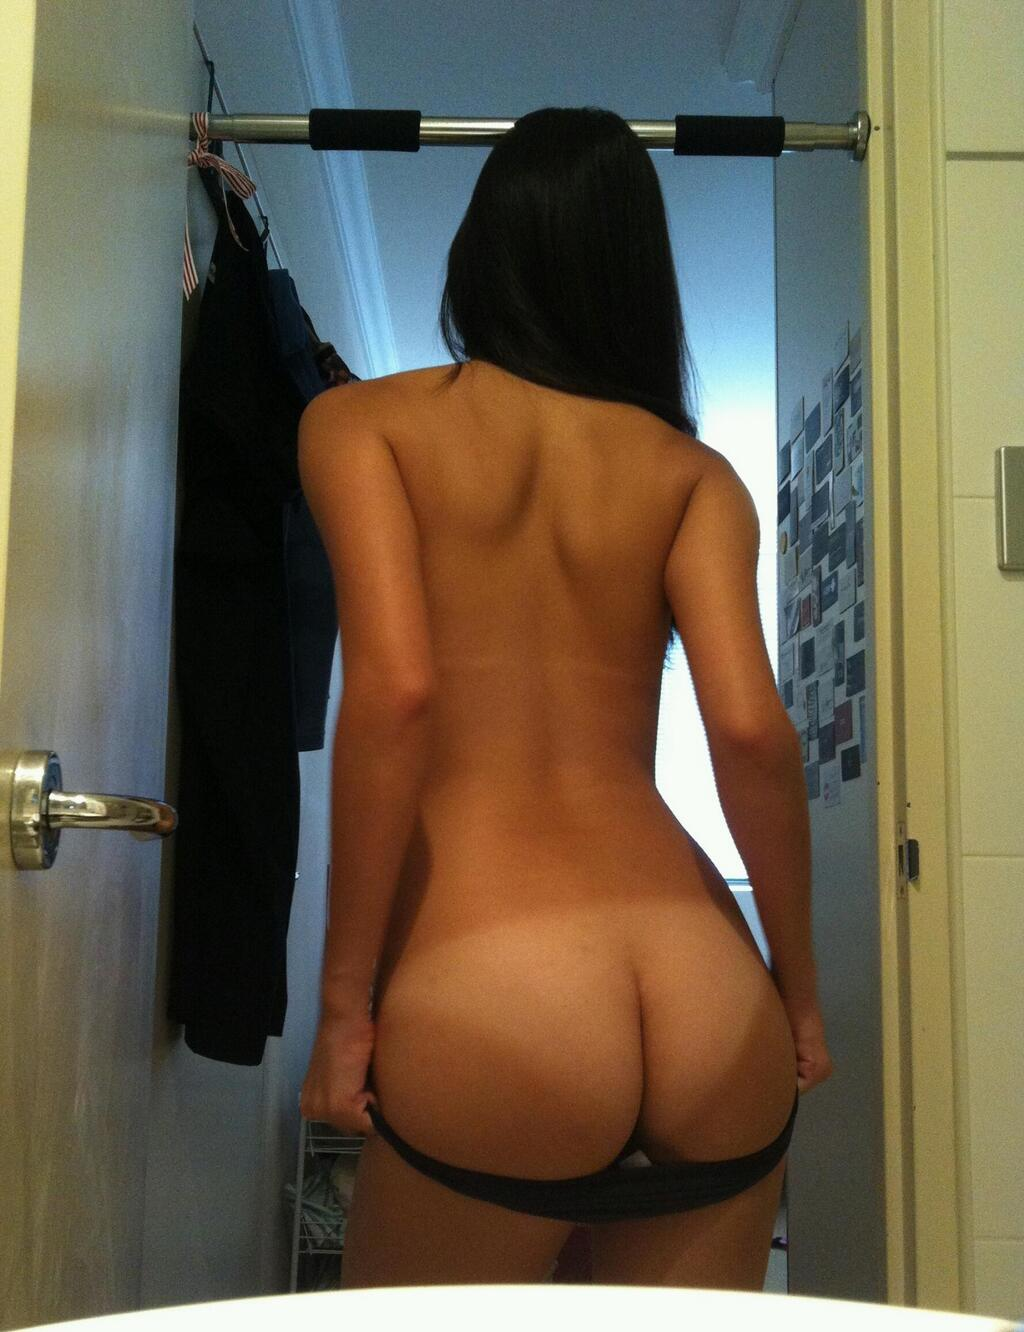 Beautiful brunettes taking photos in mirrors nude